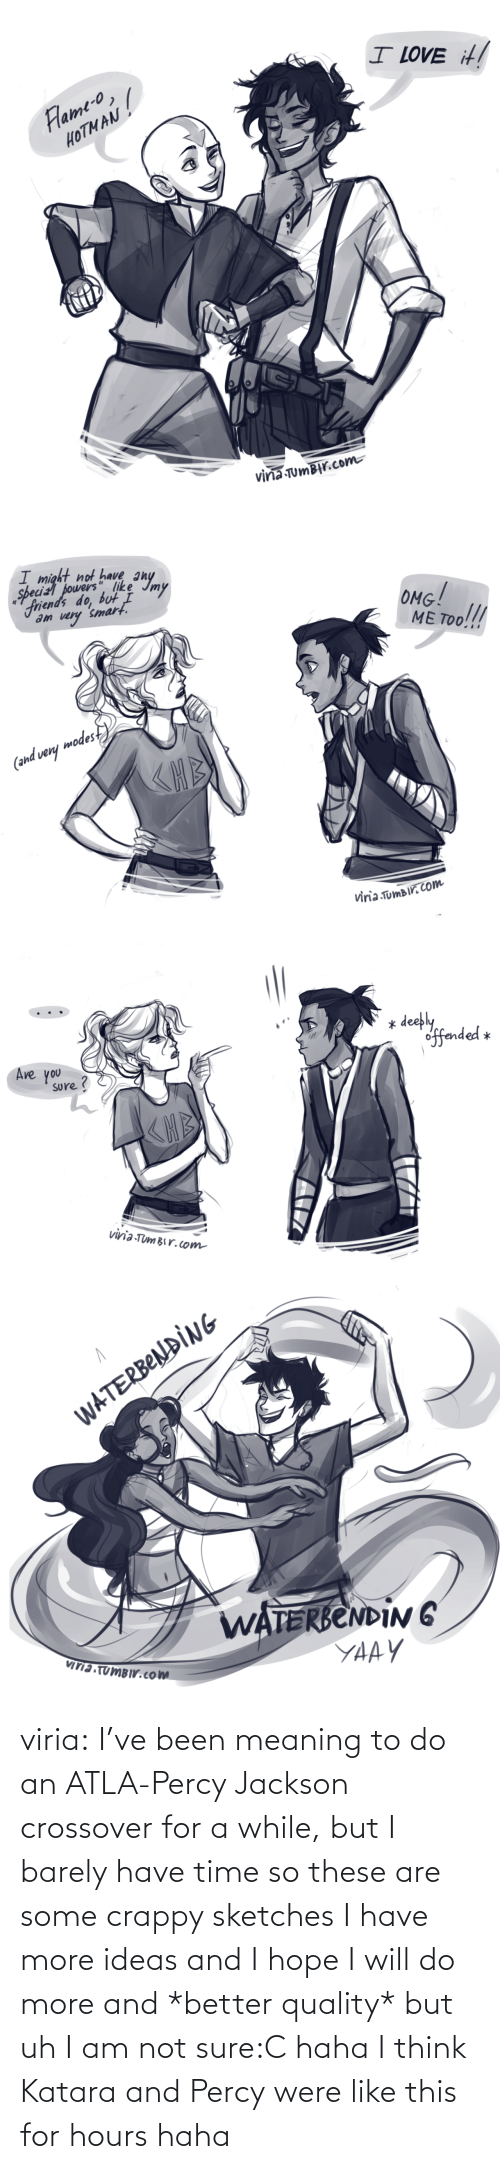 Target, Tumblr, and Blog: viria:  I've been meaning to do an ATLA-Percy Jackson crossover for a while, but I barely have time so these are some crappy sketches I have more ideas and I hope I will do more and *better quality* but uh I am not sure:C haha I think Katara and Percy were like this for hours haha